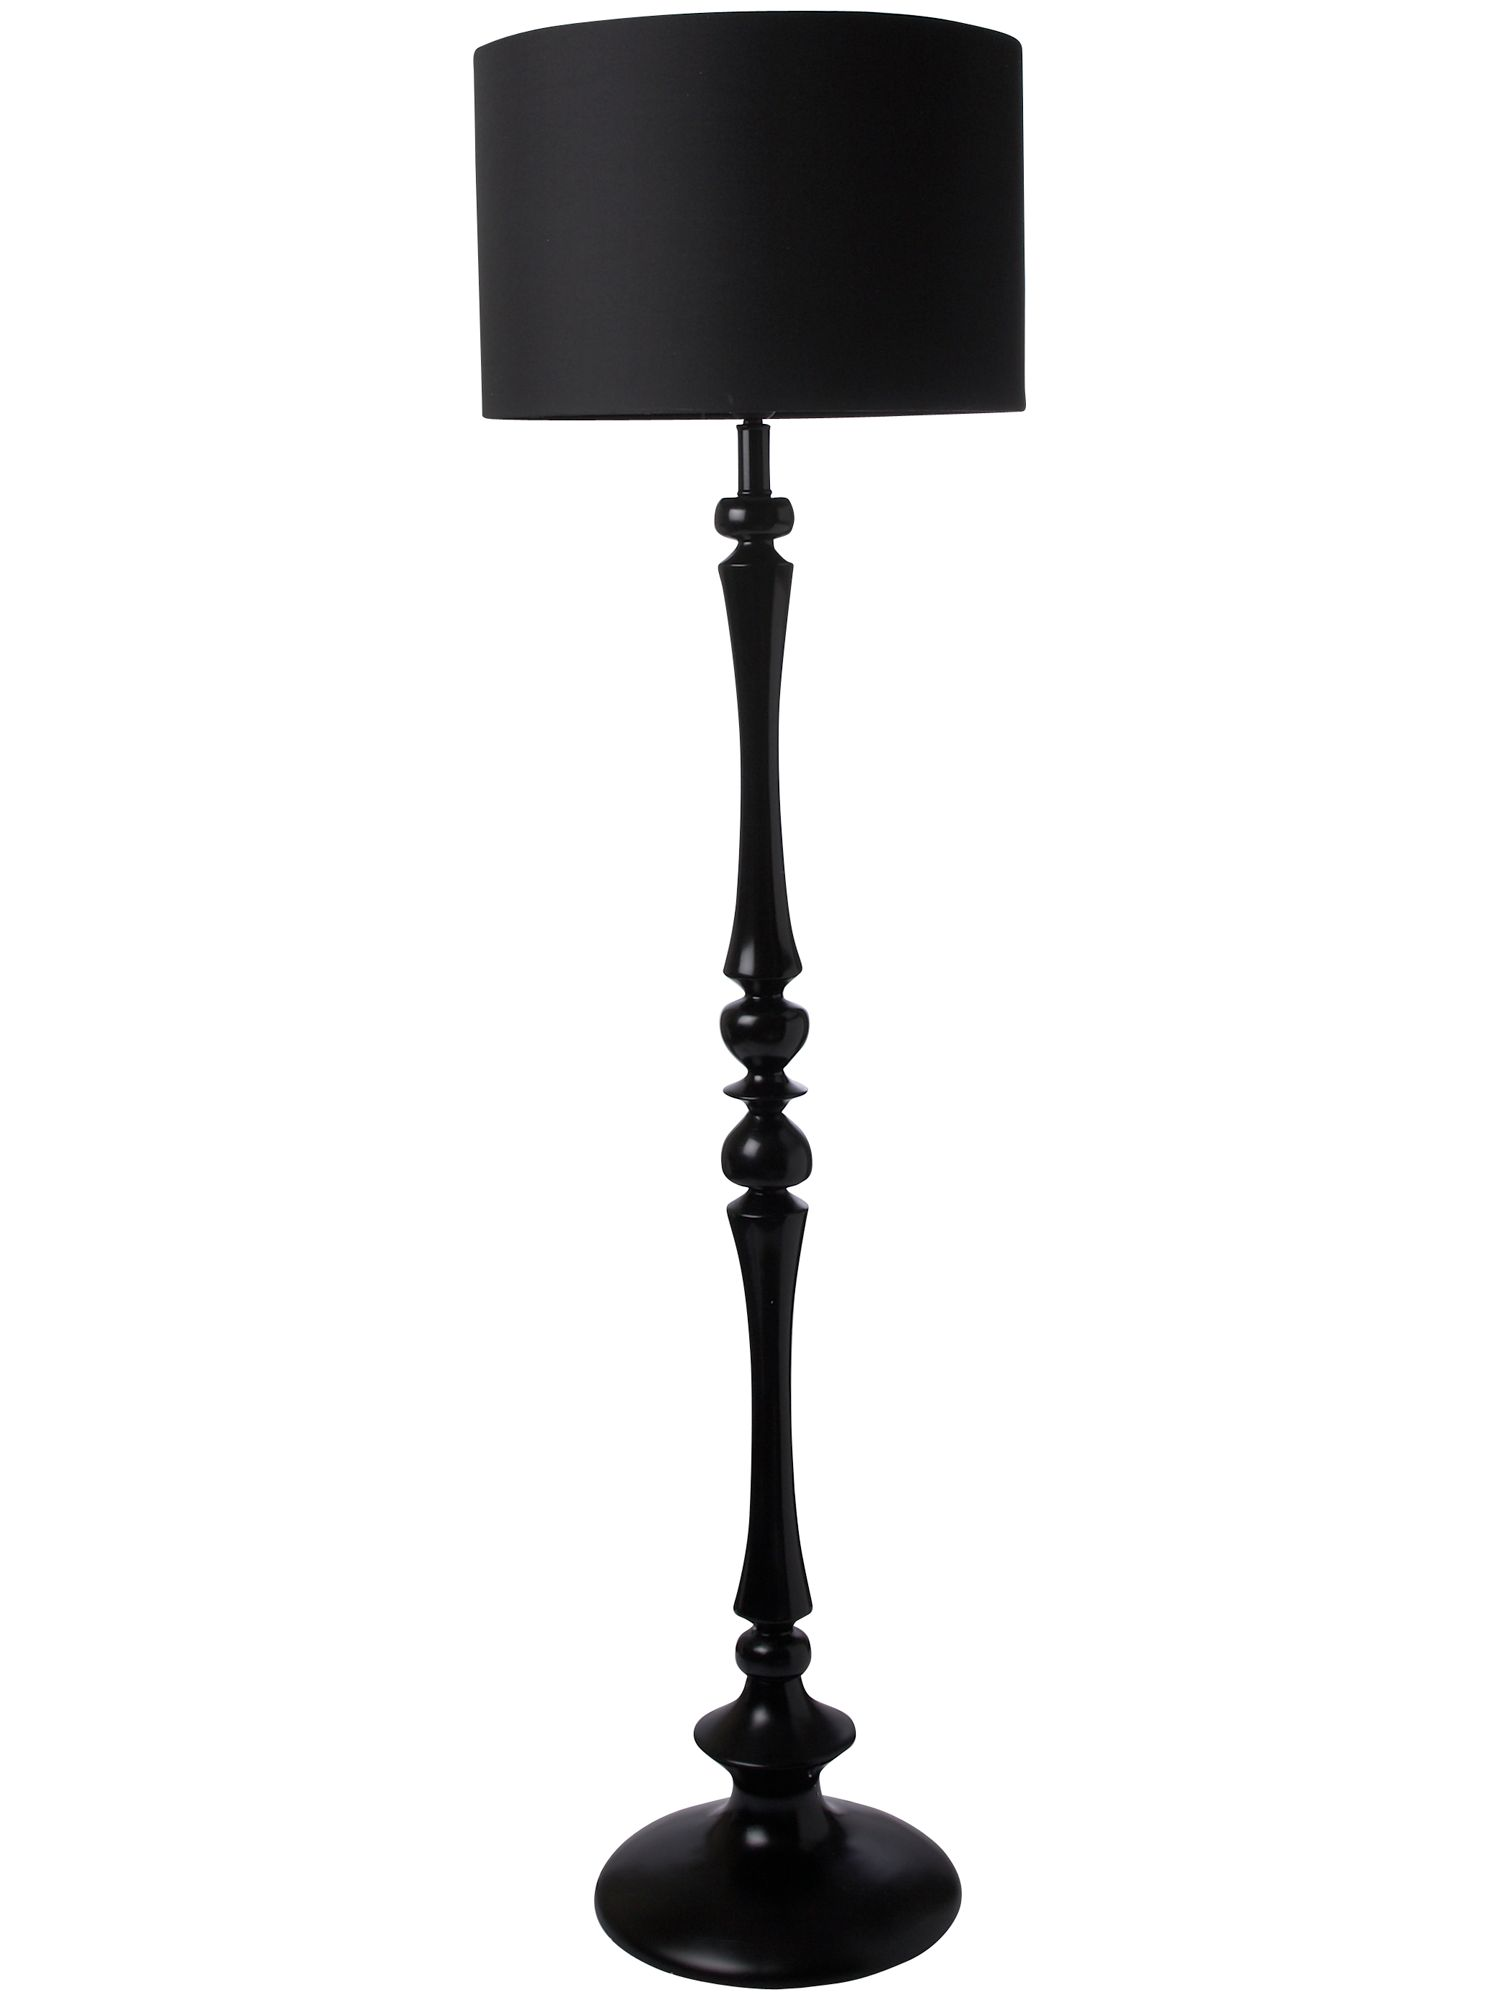 Cheap Stand Up Lamps 10 Reasons To Buy Black Tall Lamp Warisan Lighting